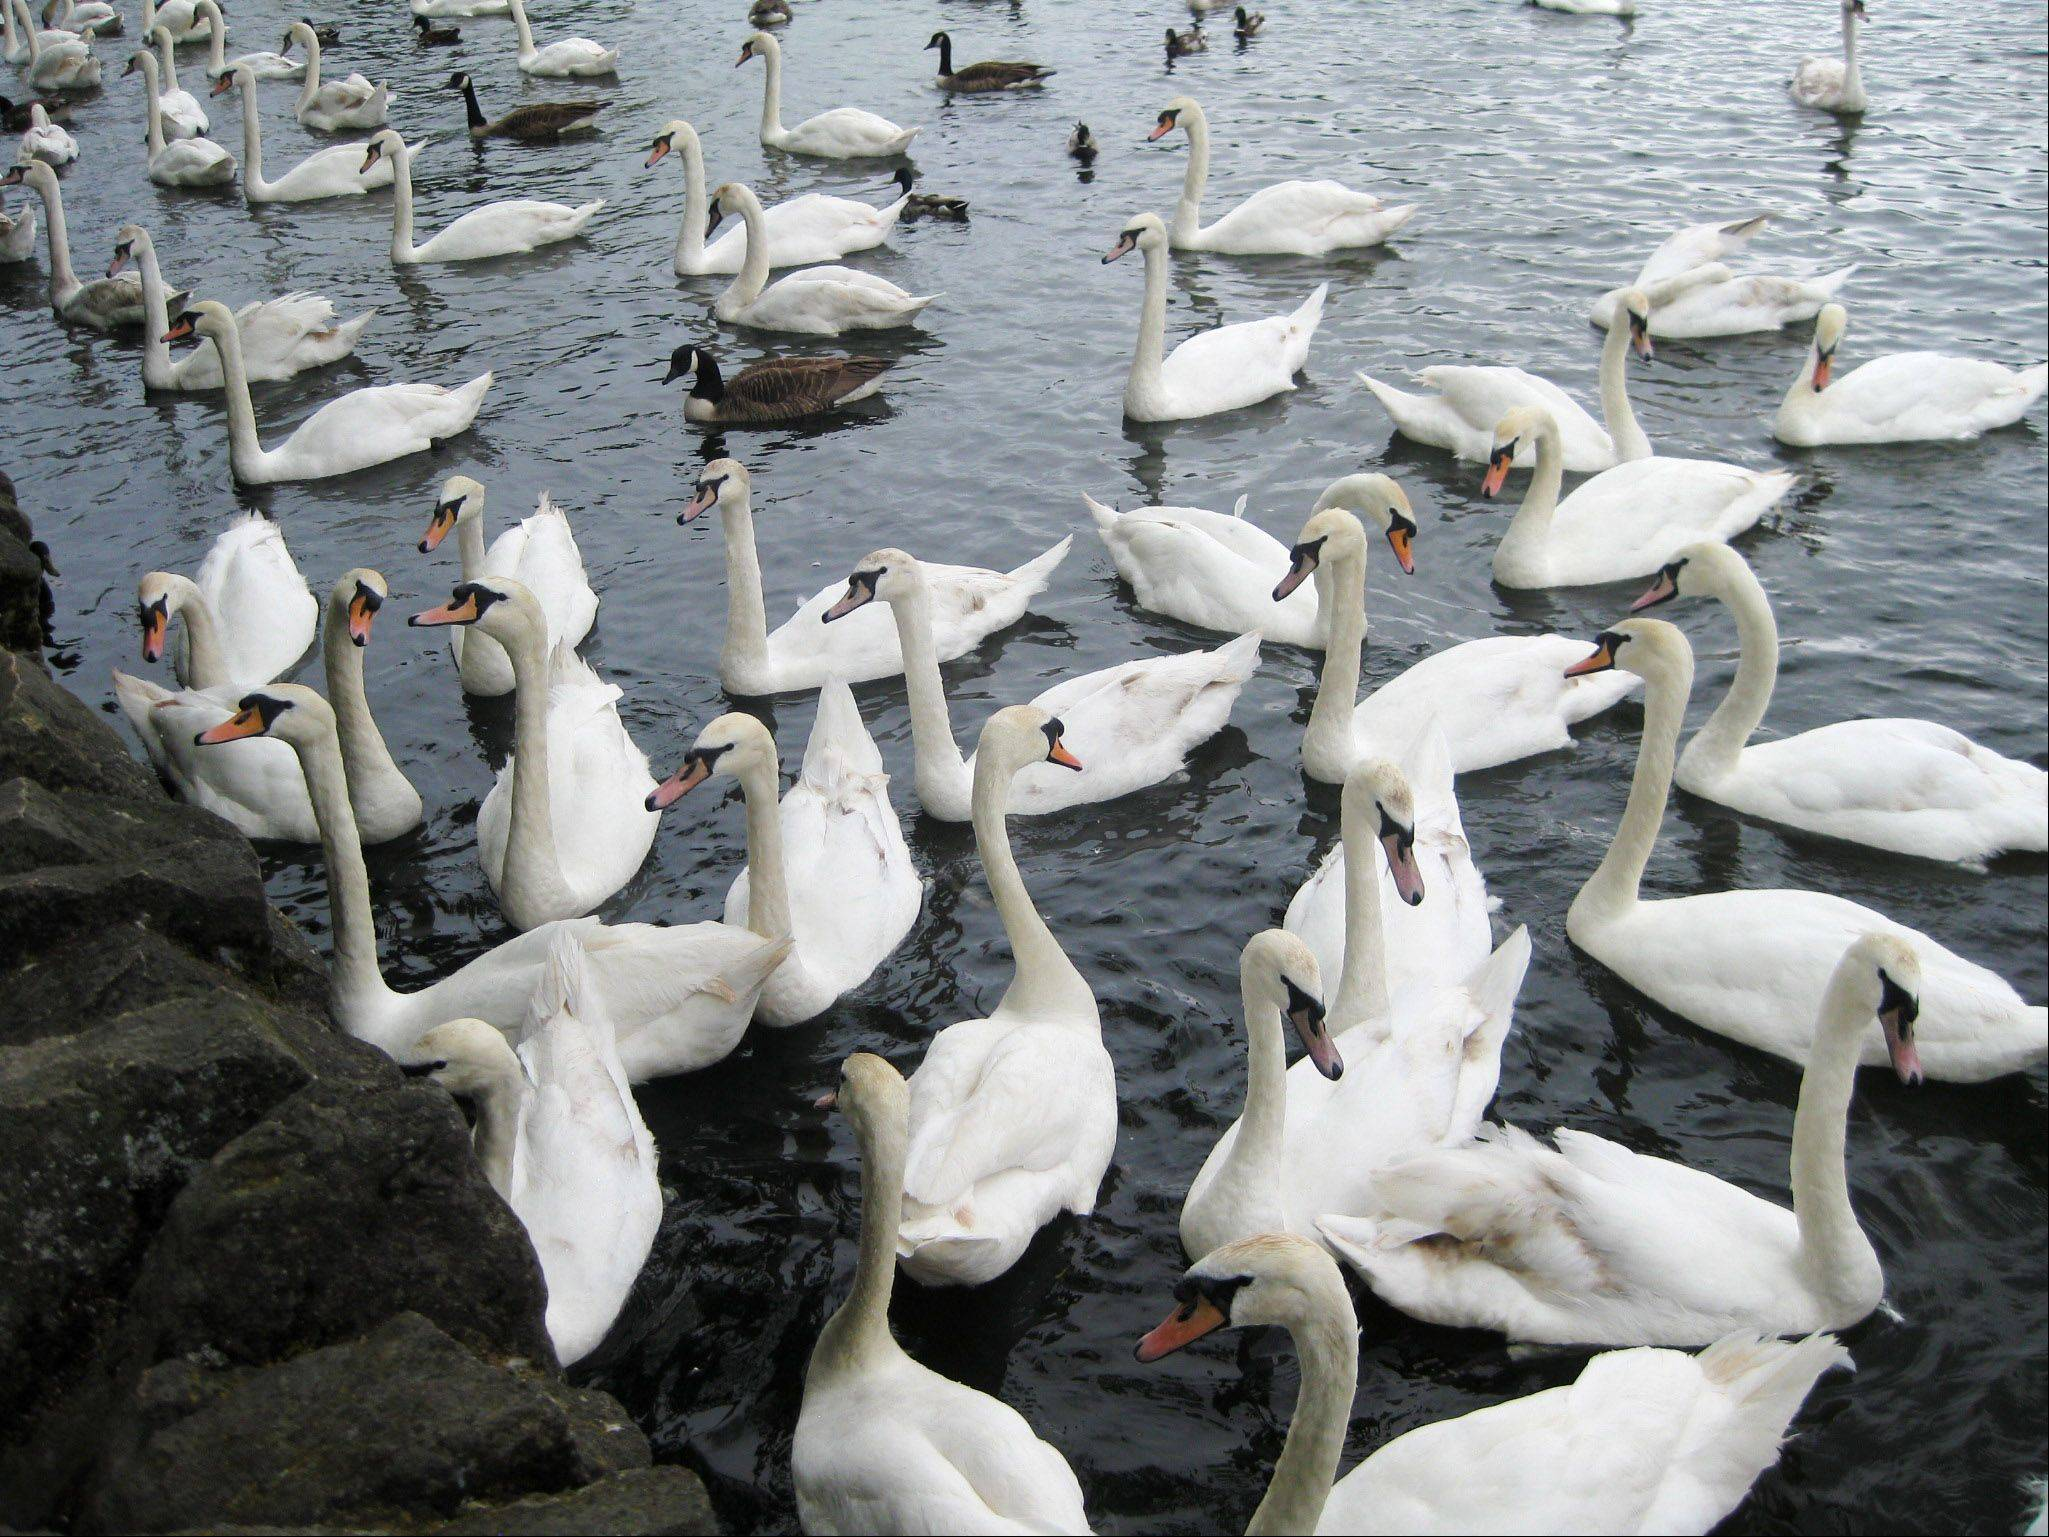 Swans gather in a pond near Windsor Castle in London.